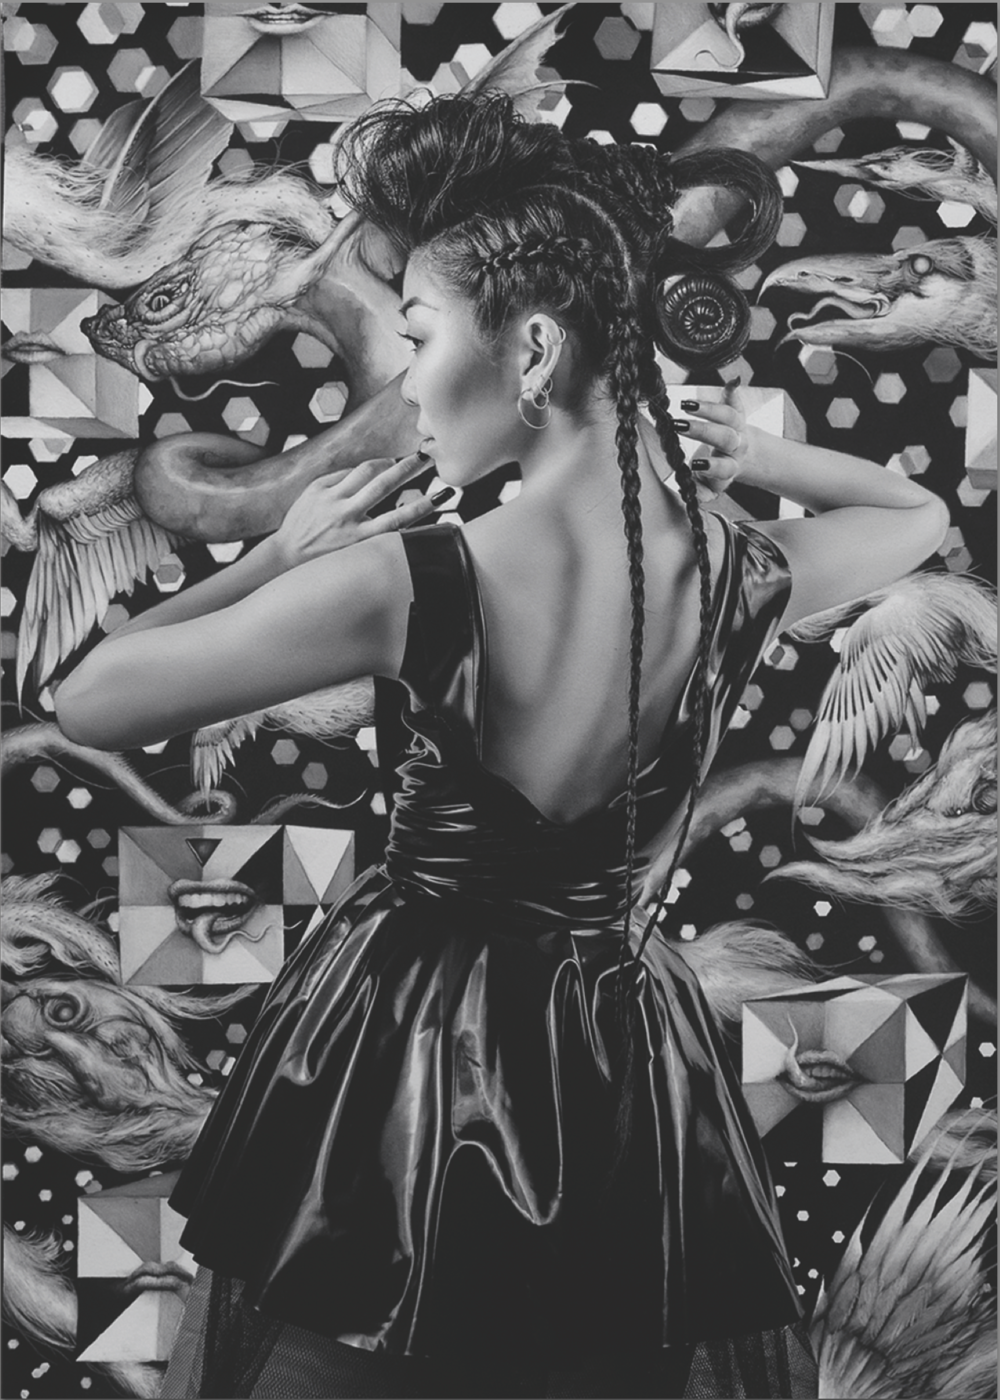 "Dan Quintana and Karen Hsiao, 'Stephanie', 22"" x 17"", Charcoal on Print Making Paper"